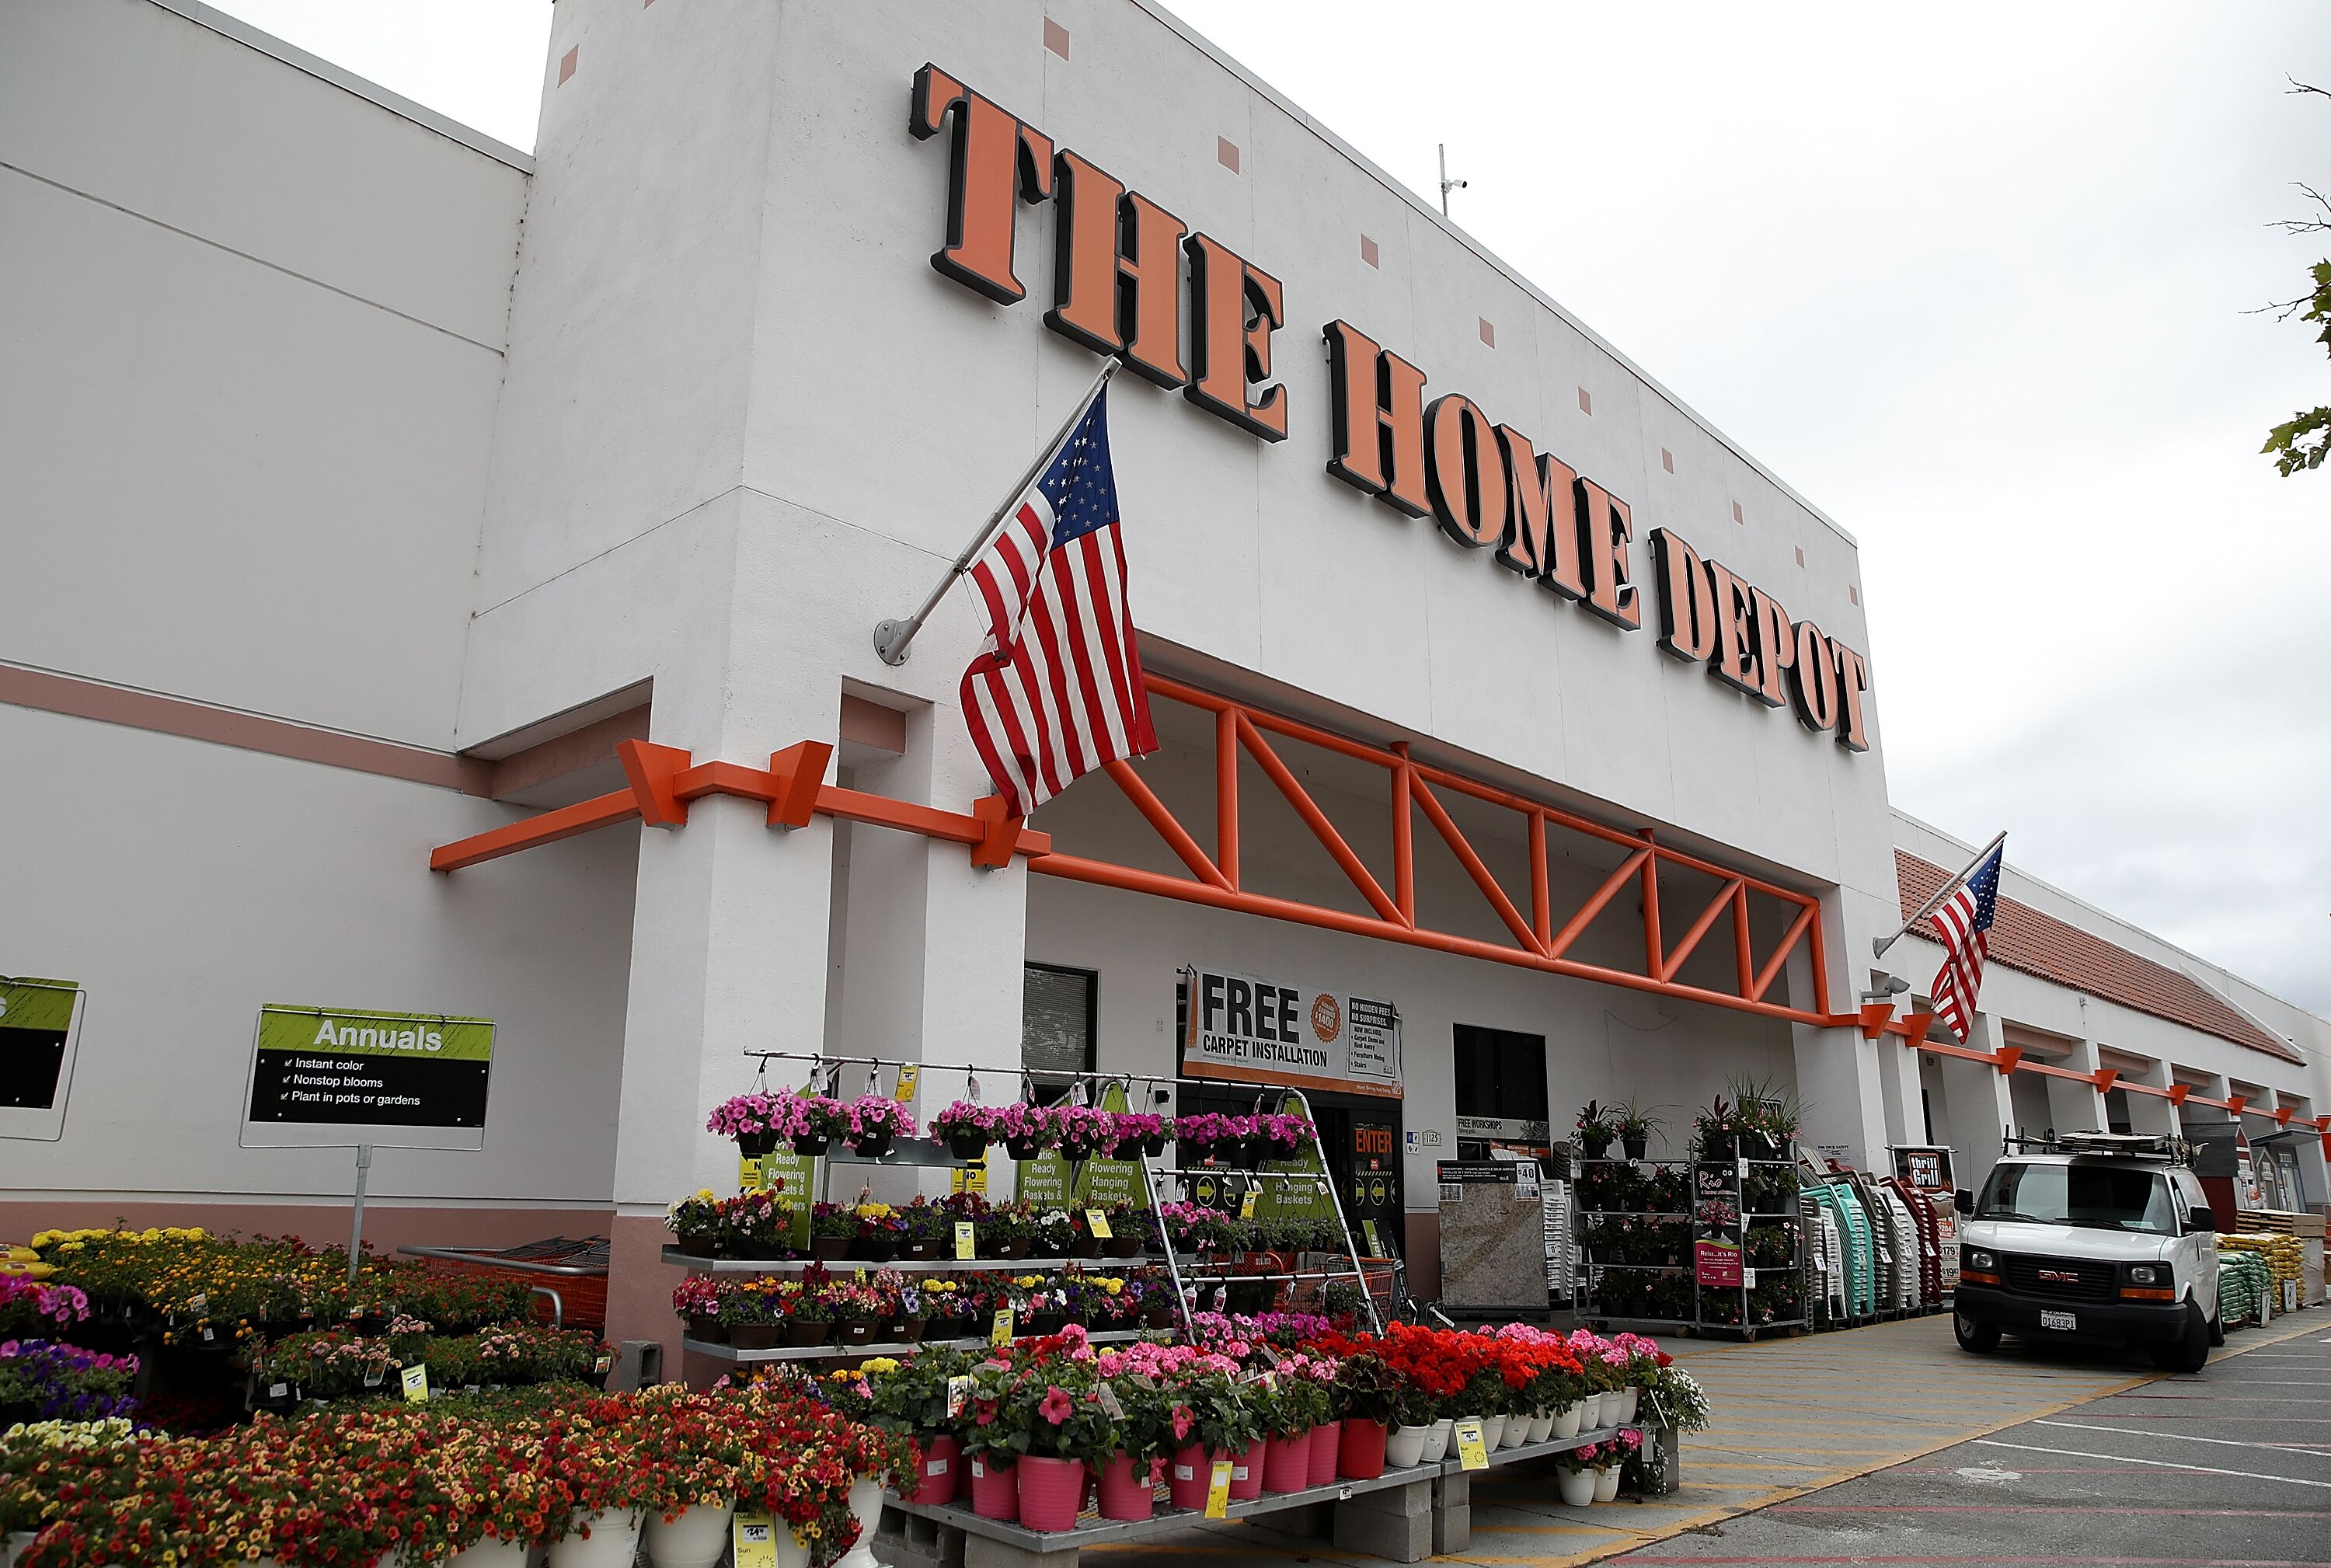 Special order products are products that are not stocked in The Home Depot stores, but are available by placing a special order directly with the manufacturer. This allows The Home Depot to